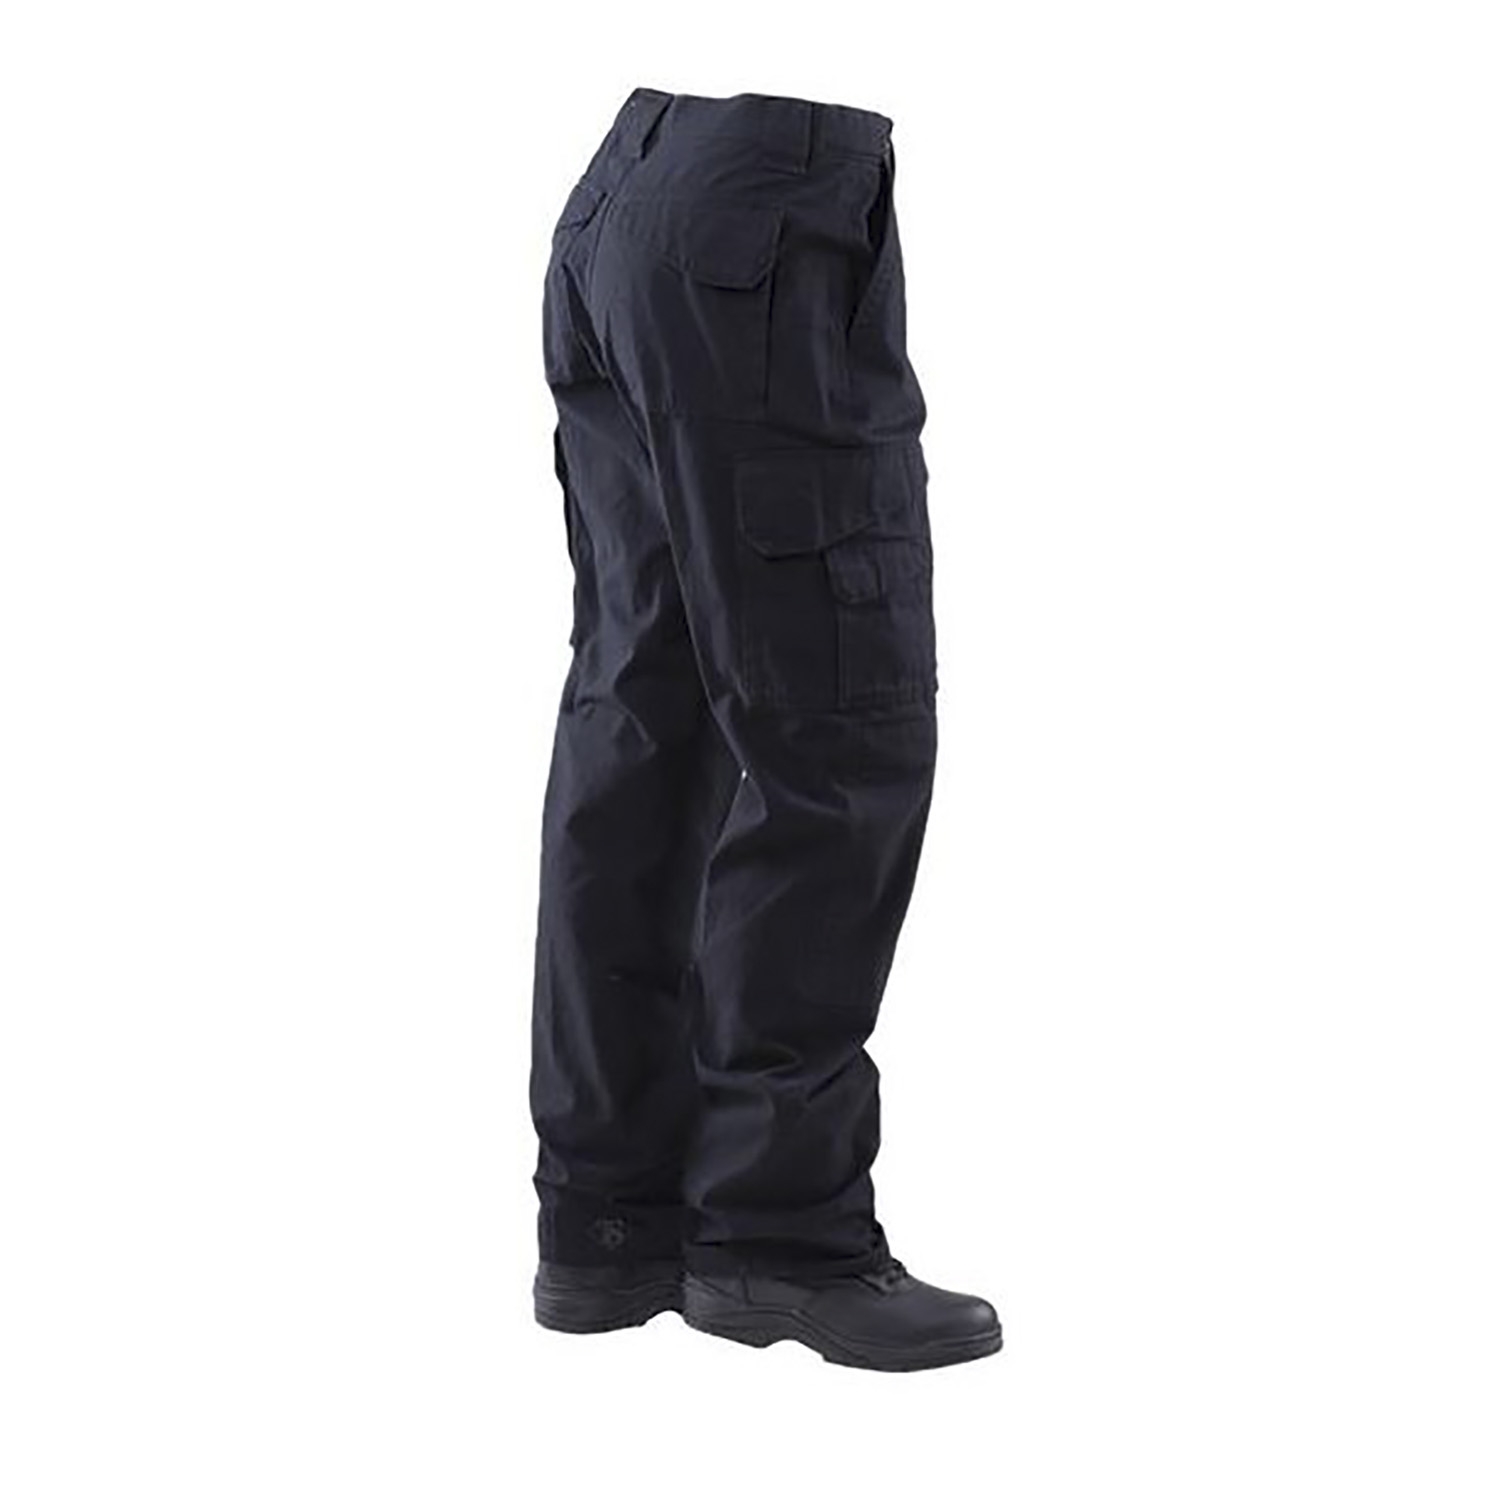 Tru Spec 24-7 Series Men's Tactical Pants